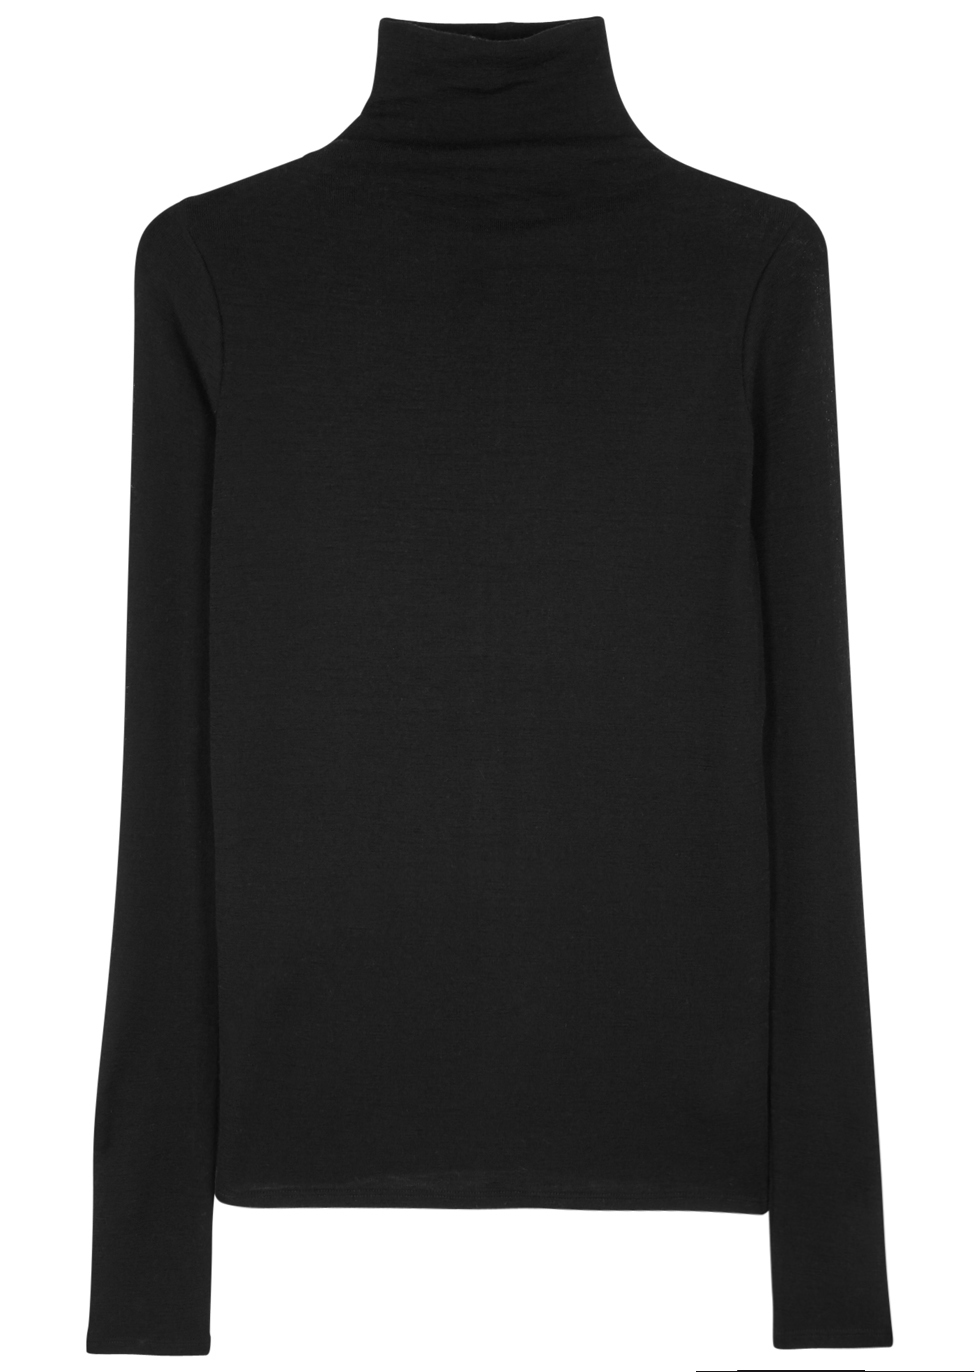 Black Fine Knit Wool Jumper - pattern: plain; neckline: roll neck; style: standard; predominant colour: black; occasions: casual, work, creative work; length: standard; fibres: wool - 100%; fit: standard fit; sleeve length: long sleeve; sleeve style: standard; texture group: knits/crochet; pattern type: knitted - fine stitch; wardrobe: basic; season: a/w 2016